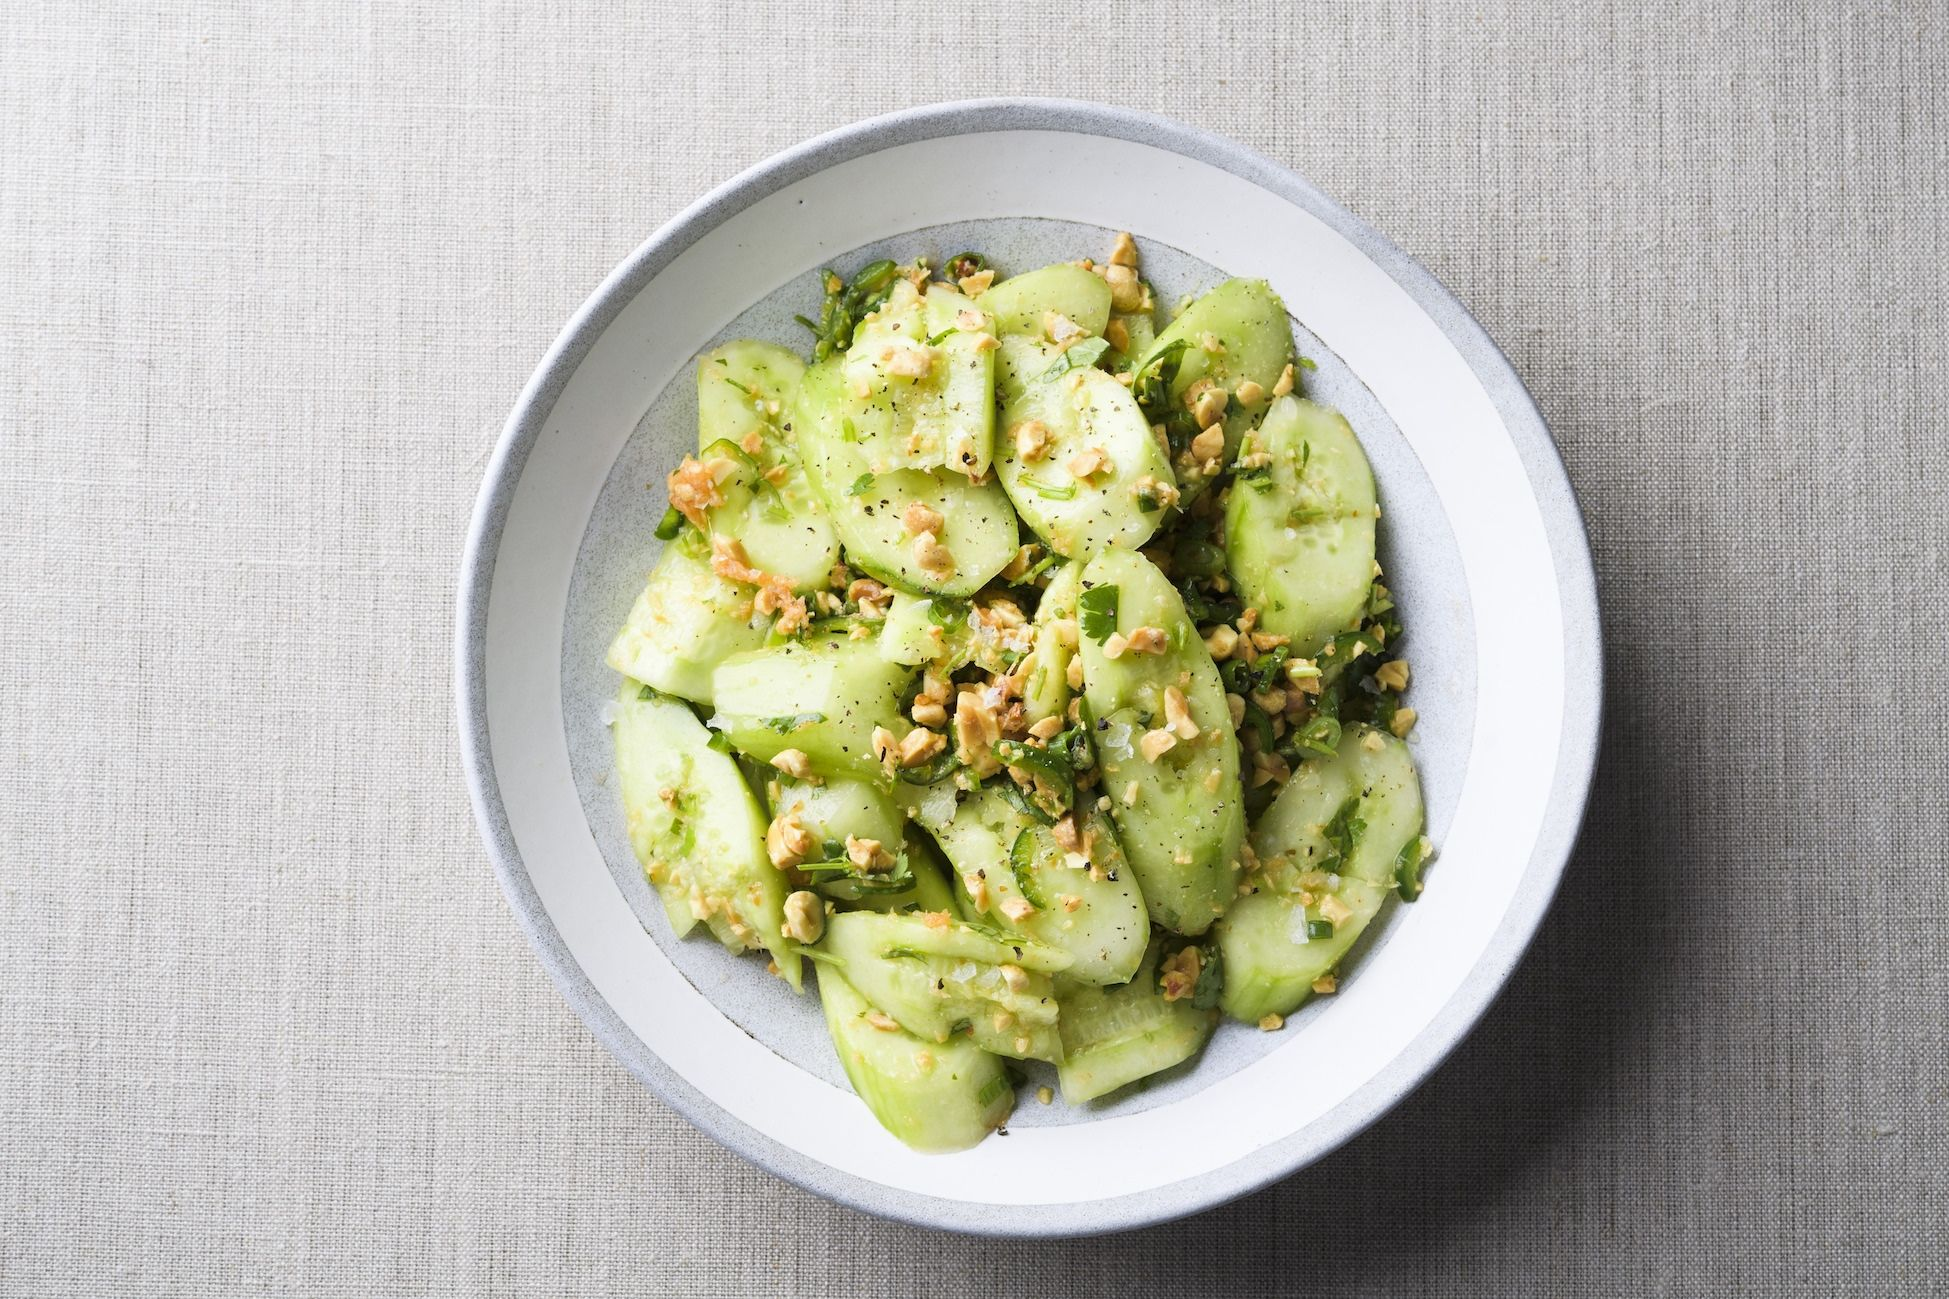 Smashed Cucumber Salad with Peanuts, Scallions and Cilantro